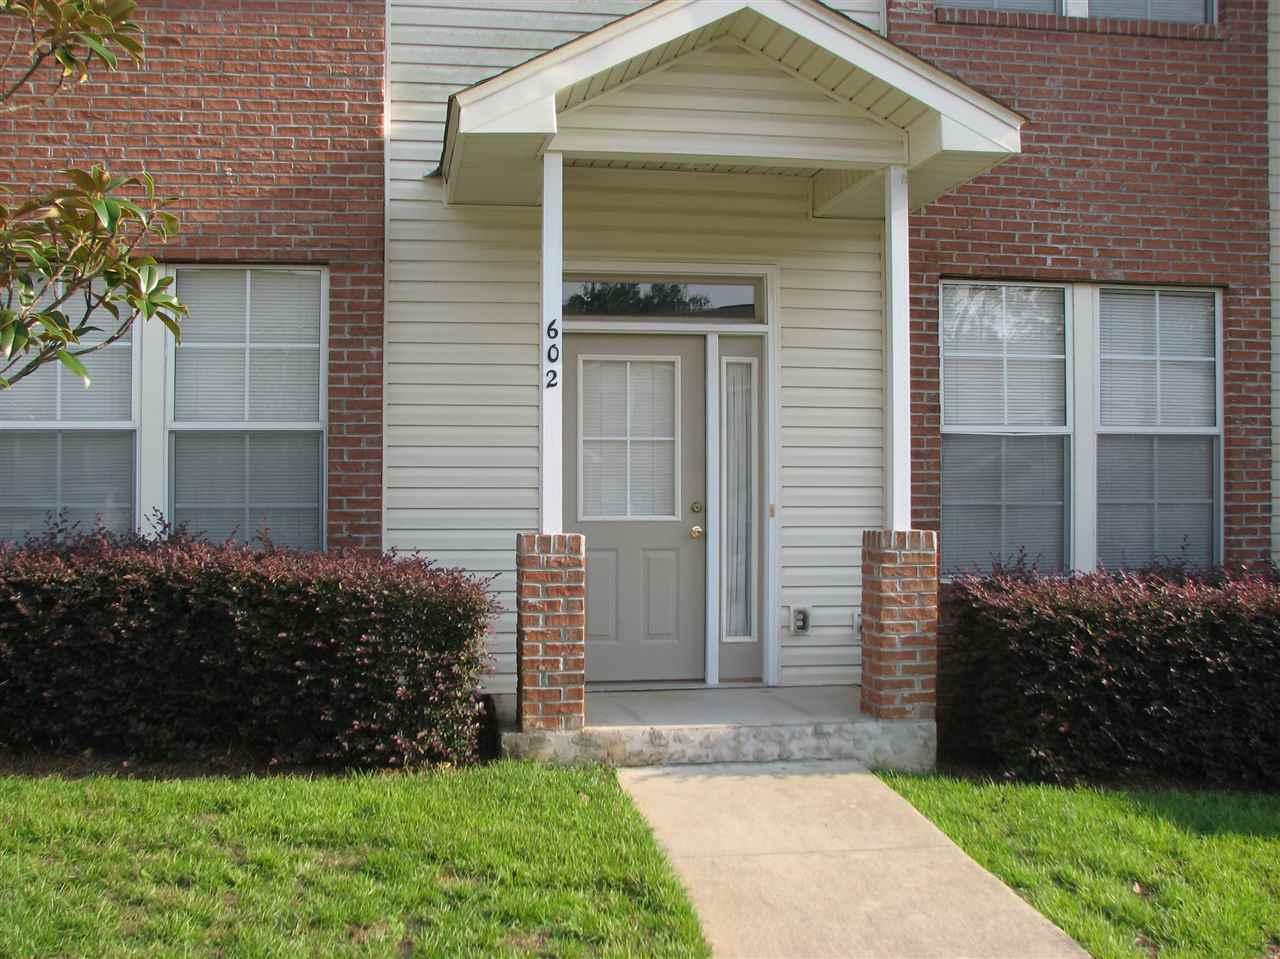 2014 midyette rd 204, tallahassee, fl 32301 beycome